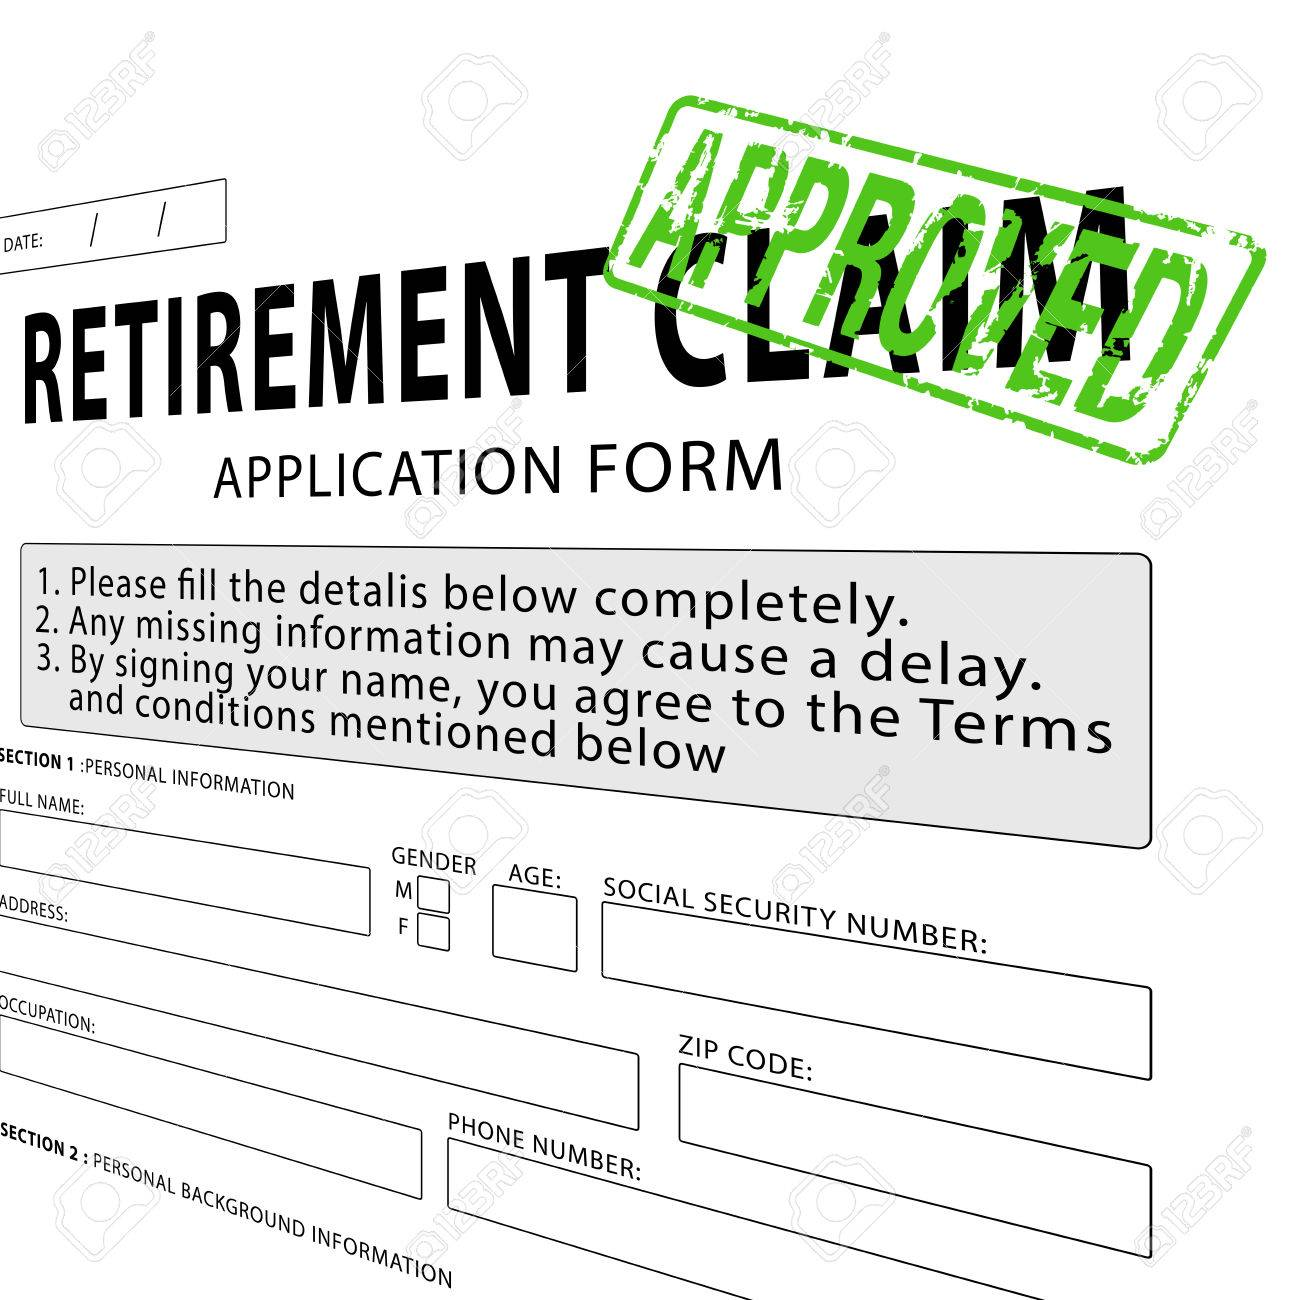 Retirement Claim Application Form With Green Approved Rubber ...